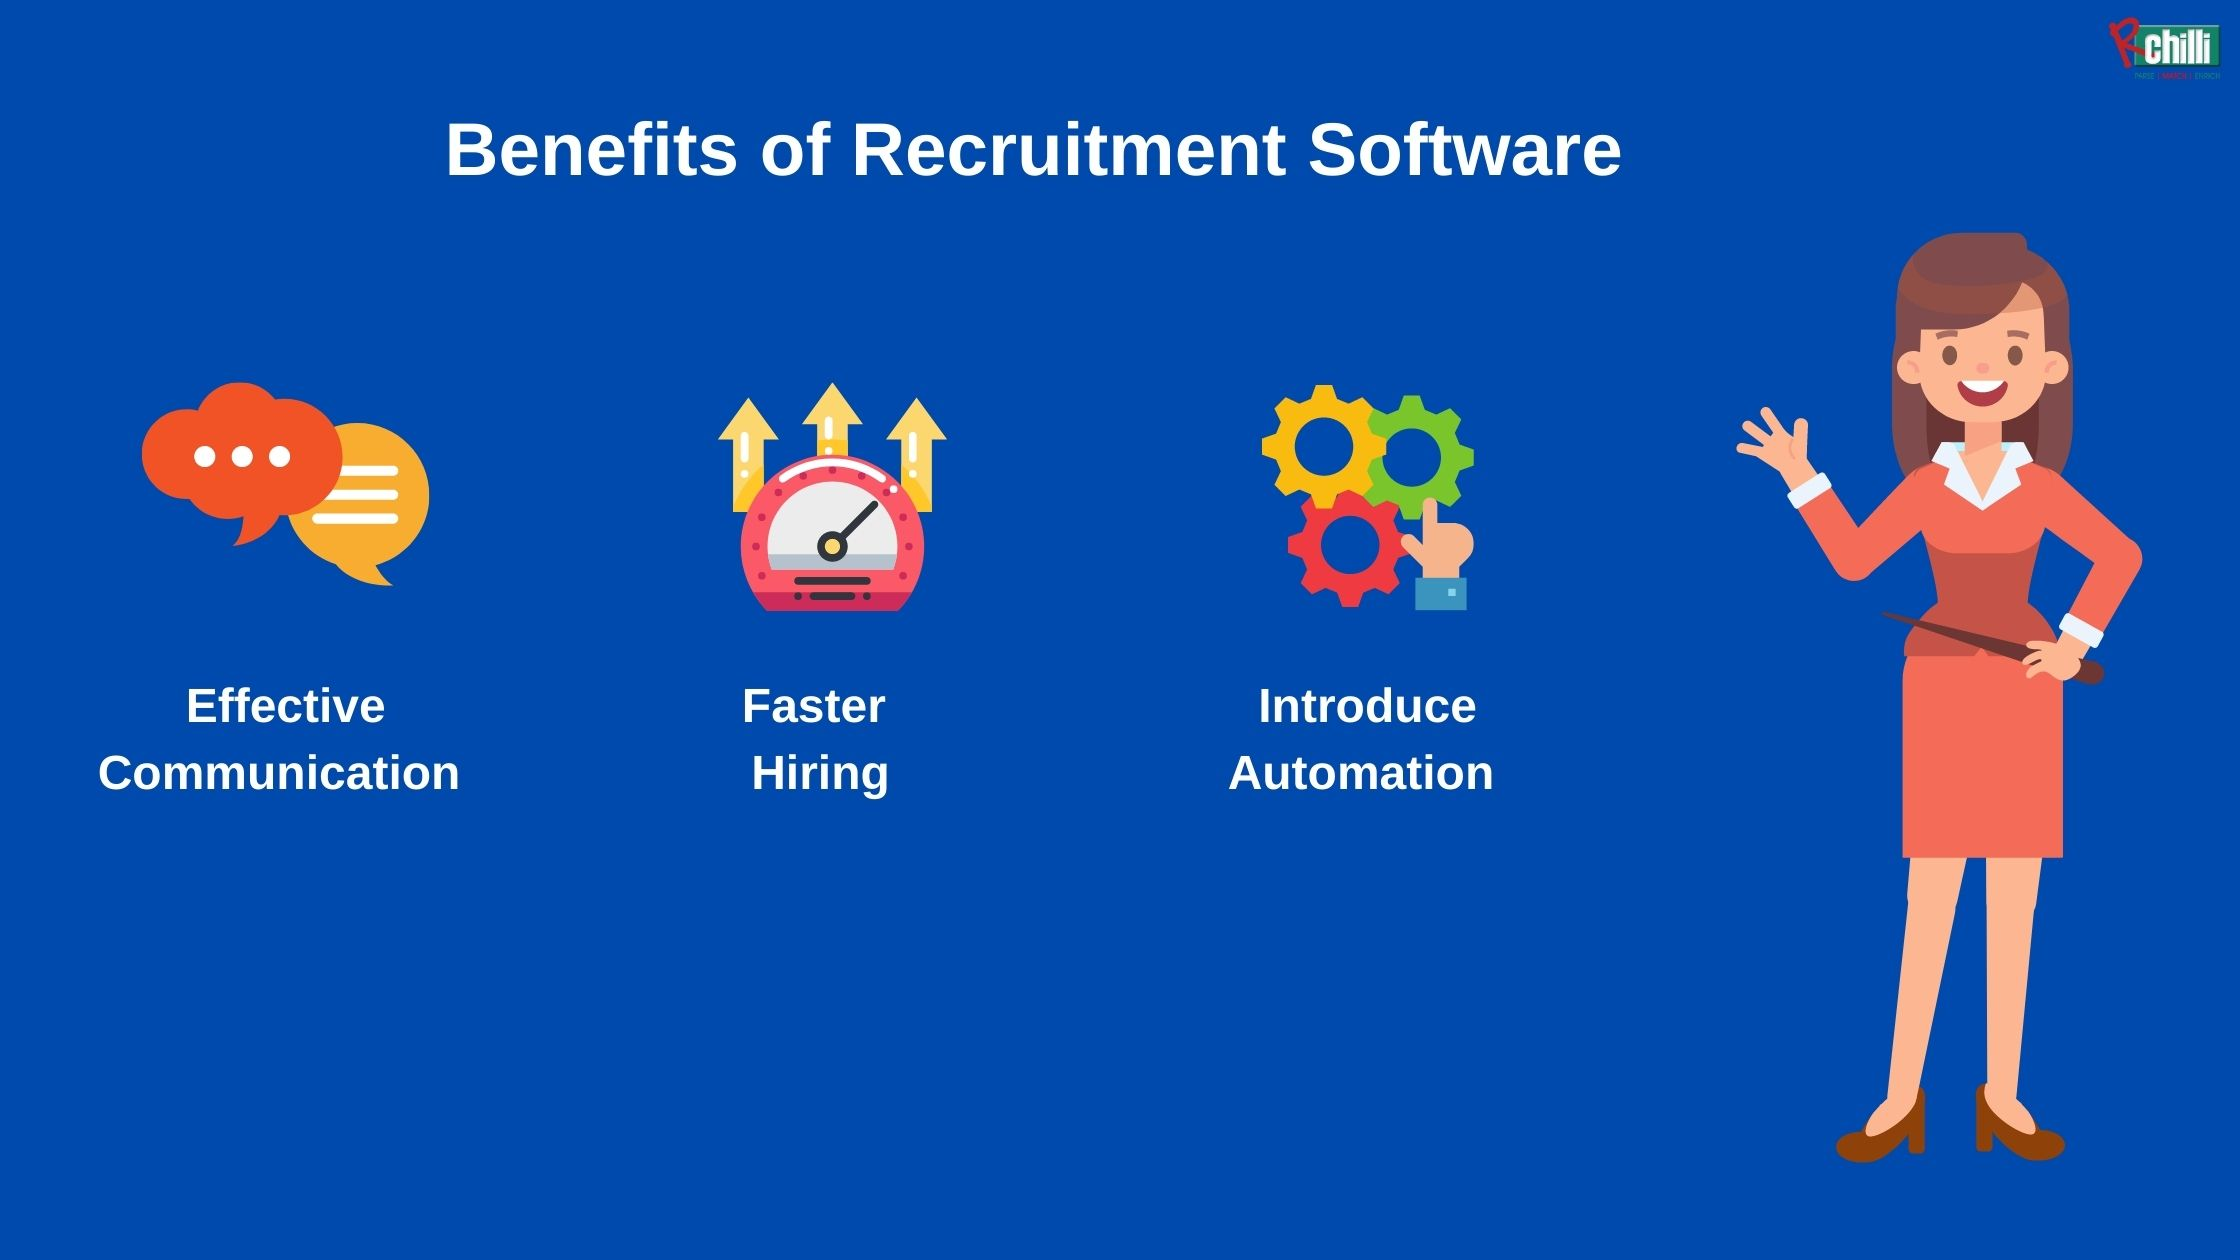 How Can Recruitment Software Impact Your Business?